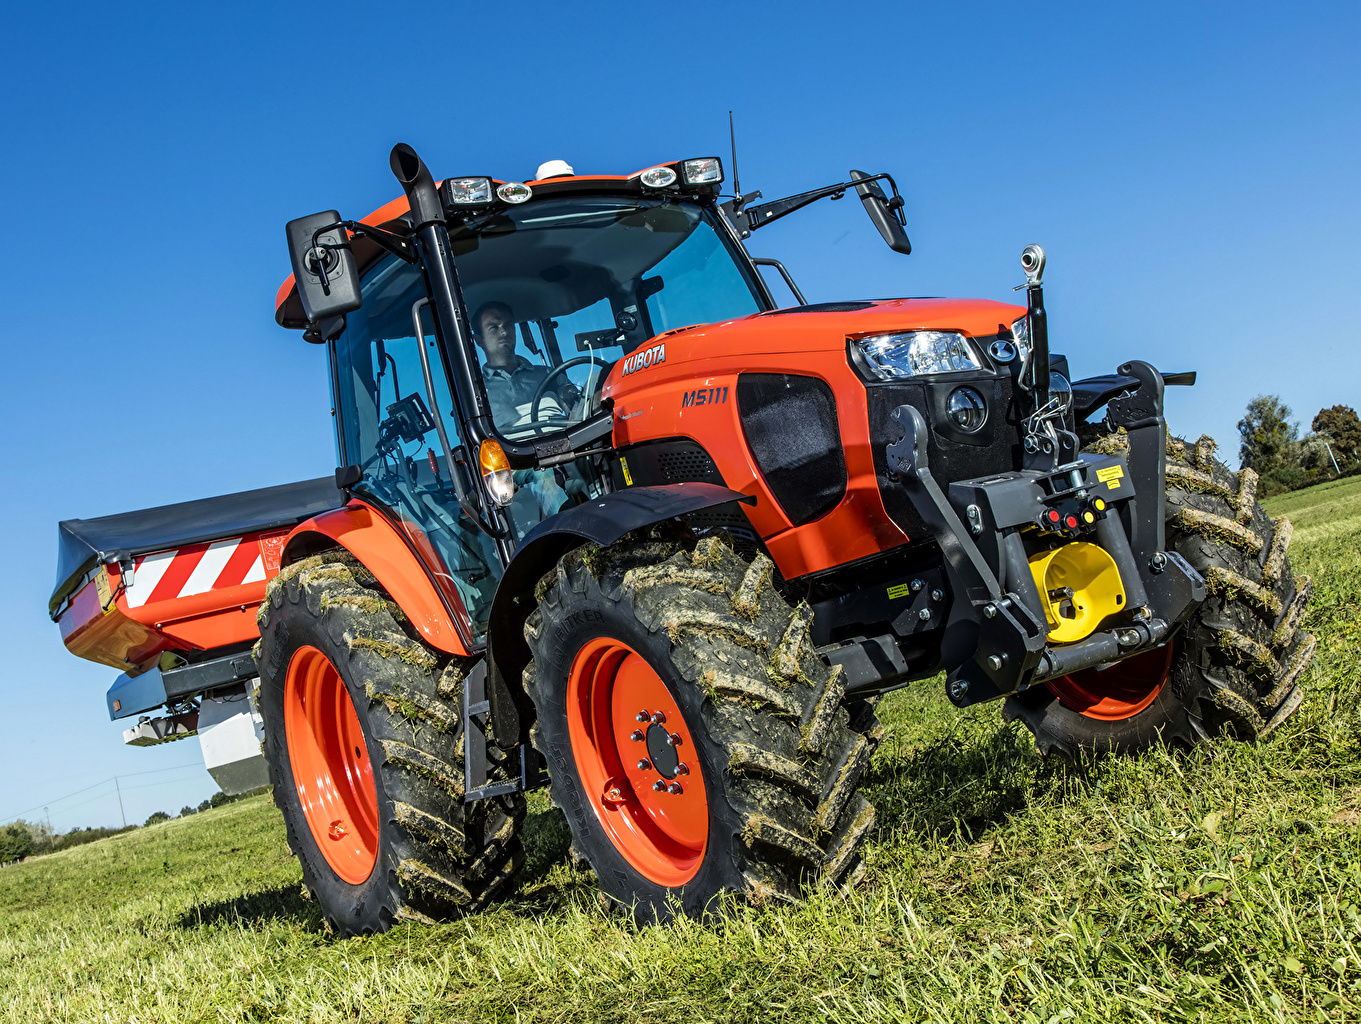 Wallpapers Tractor 2015-16 Kubota M5-111 Grass